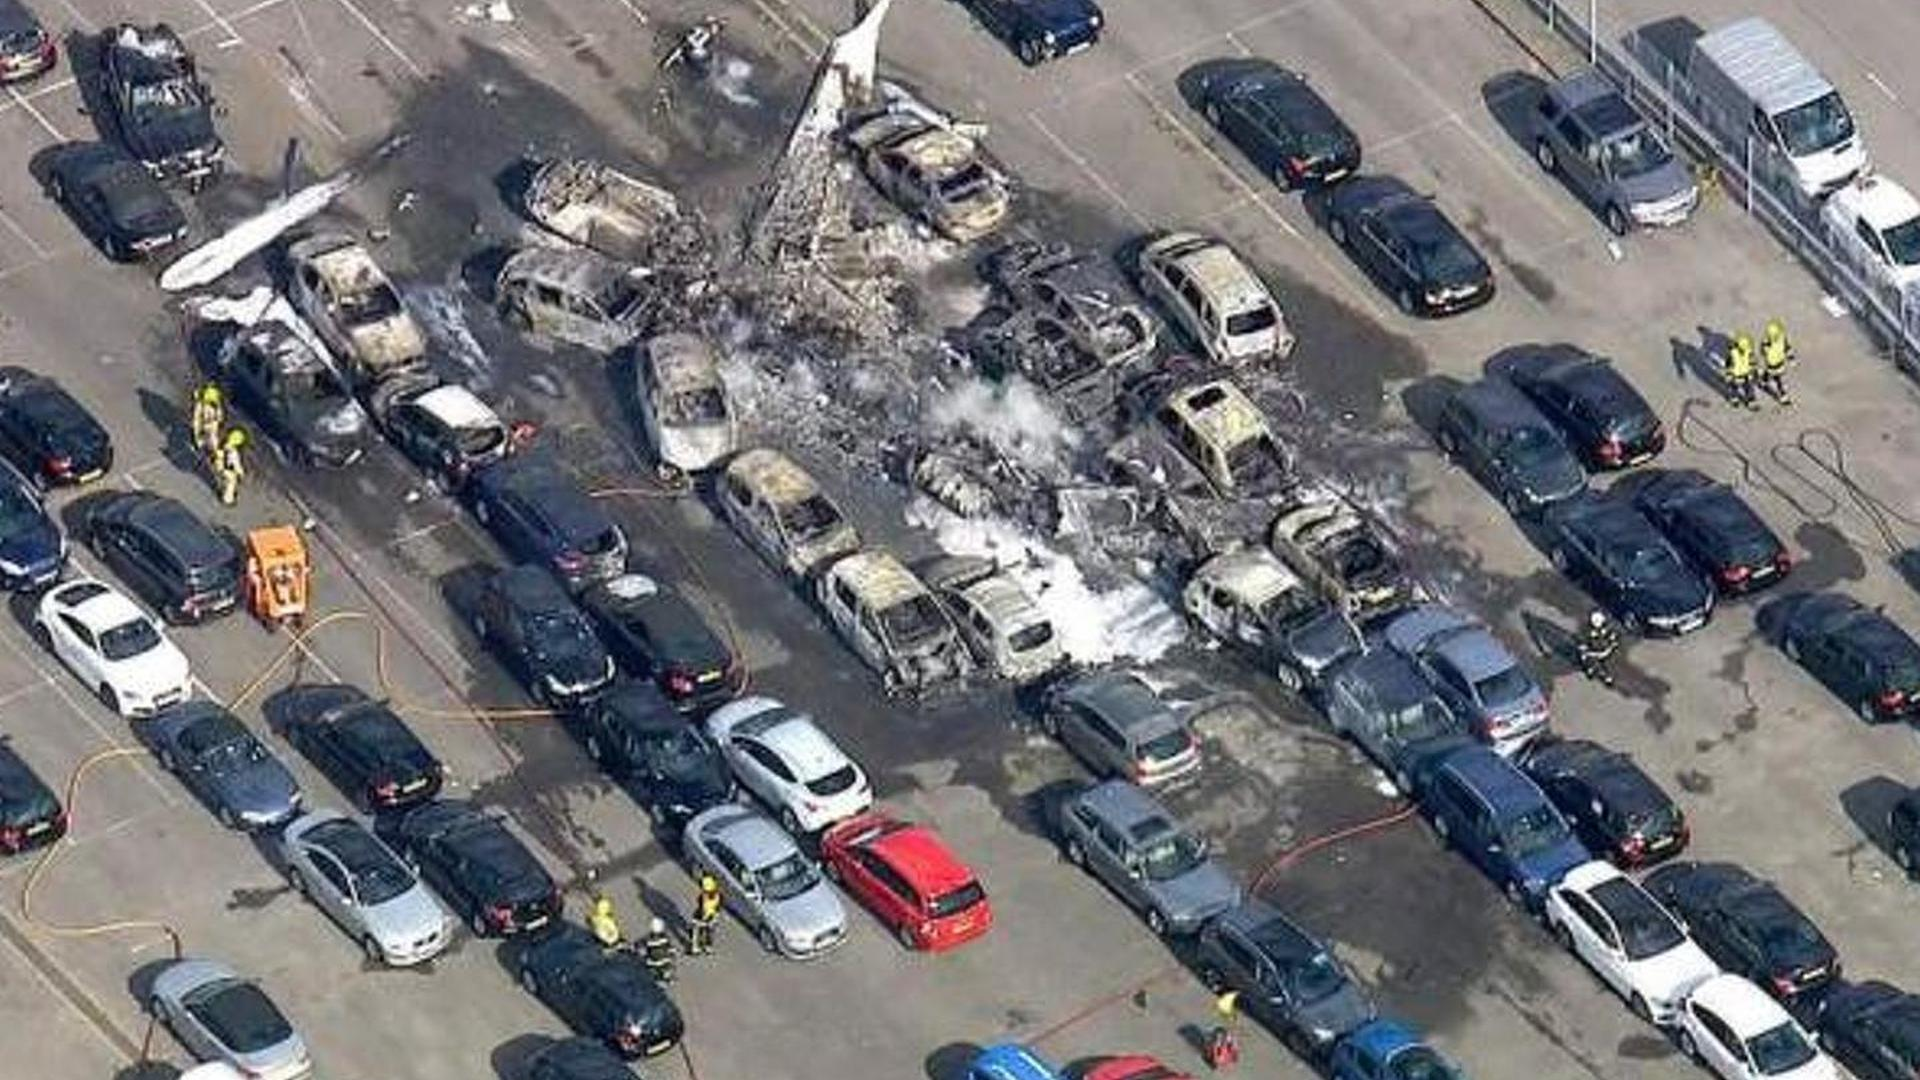 Light plane owned by Bin Laden family crashes into car auction in the UK [videos]